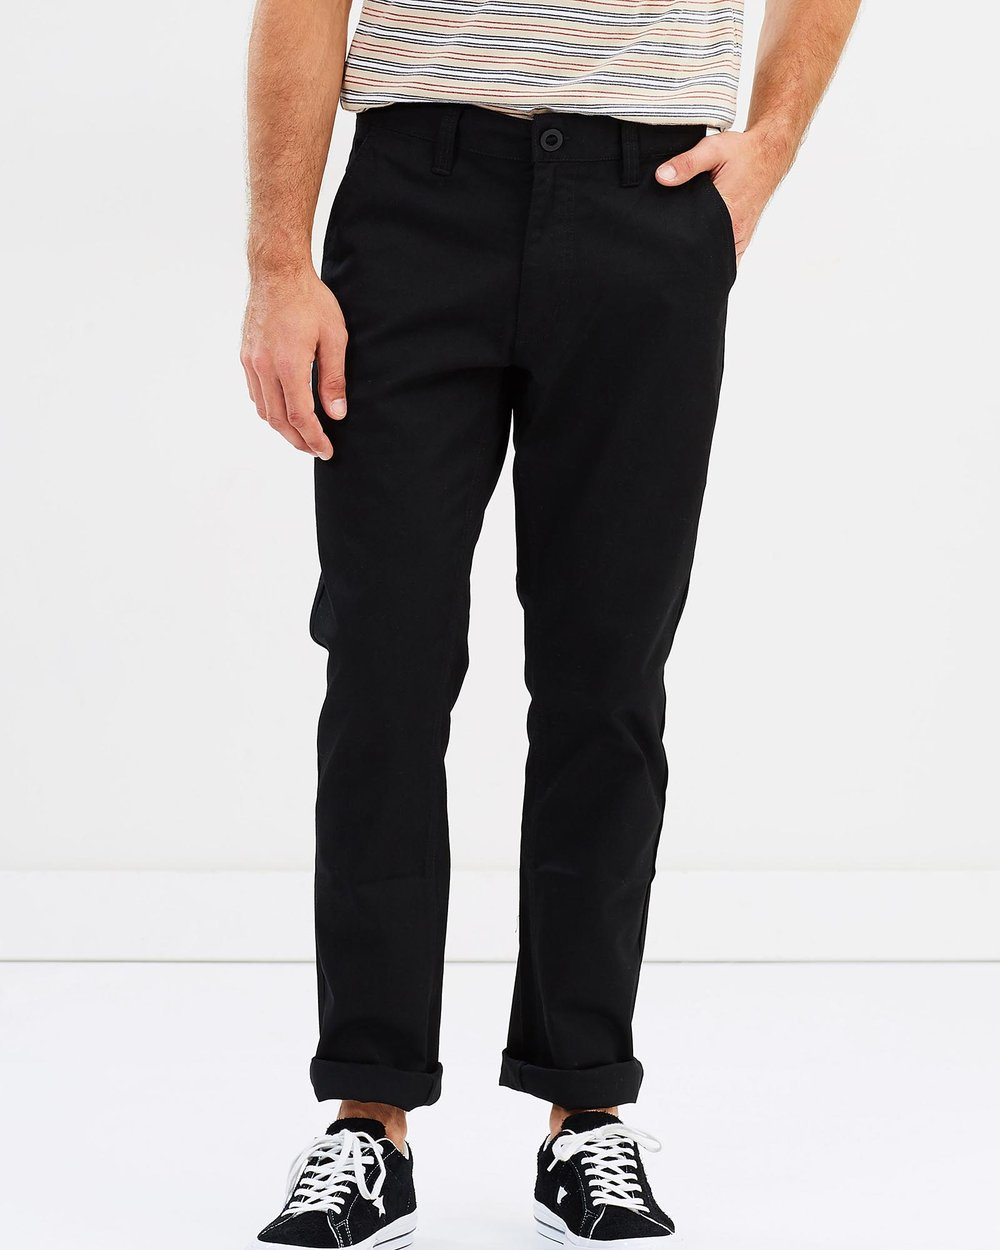 Reserve Chino Pants by Brixton Online  82e66452211